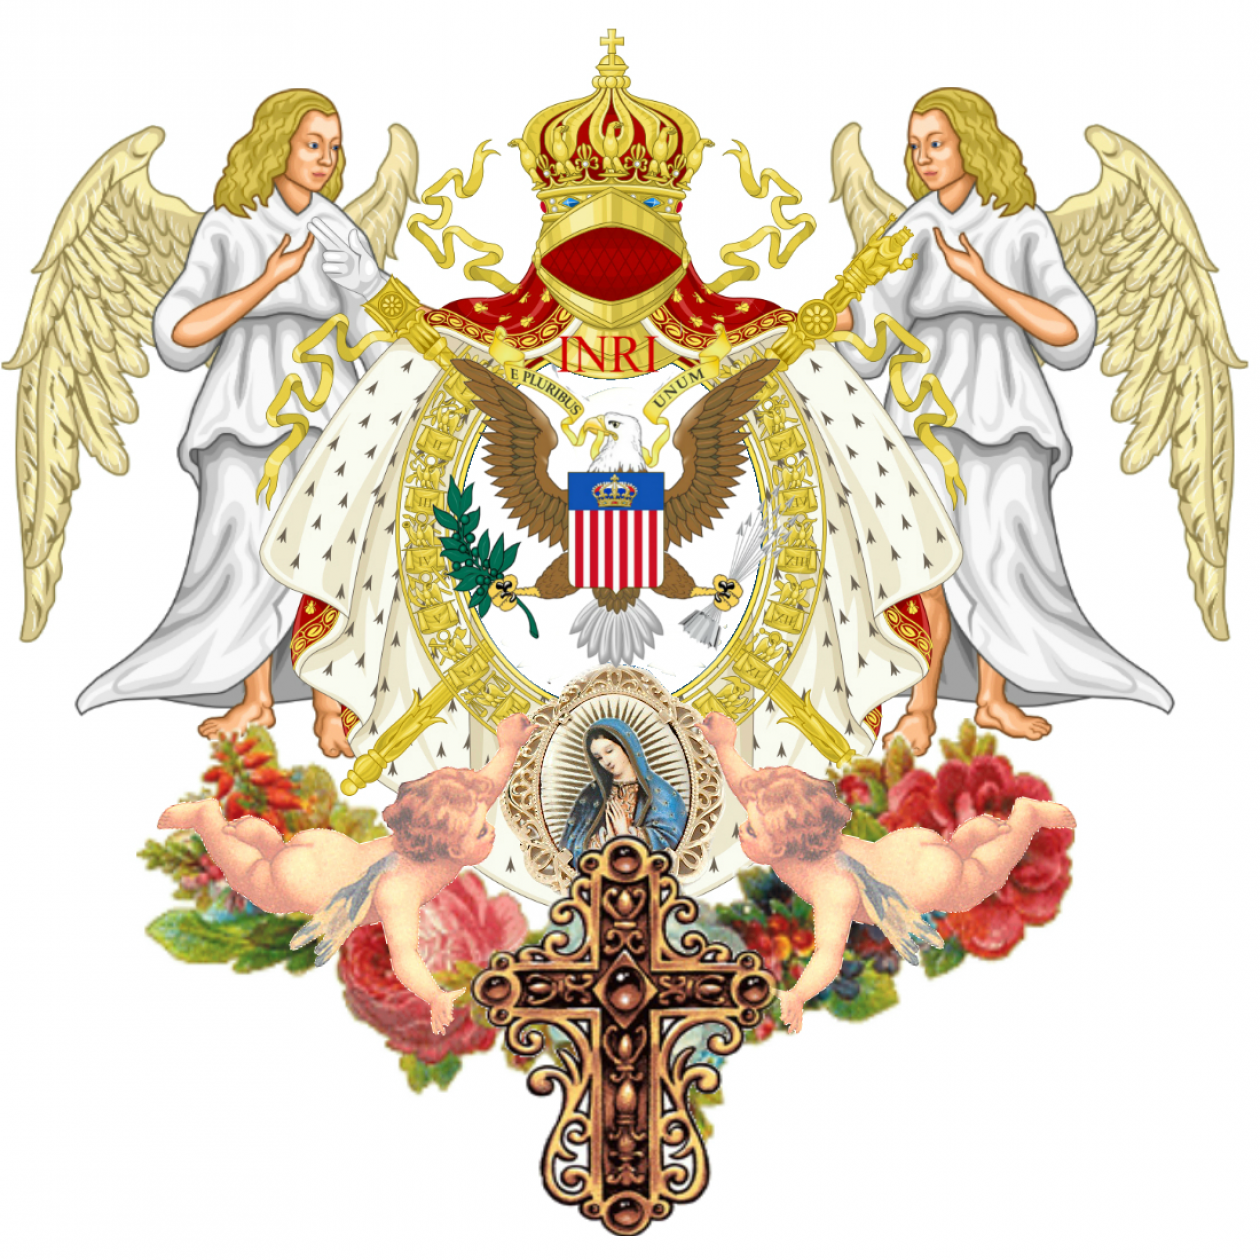 The United States of the Solar System, A.D. 2133 (Book Eight) Cropped-inri-e-pluribvs-unvm-divine-protection-for-the-united-states-of-america-and-queen-mary-her-royal-highness-maria-ram-chavira-house-of-adagio-1st